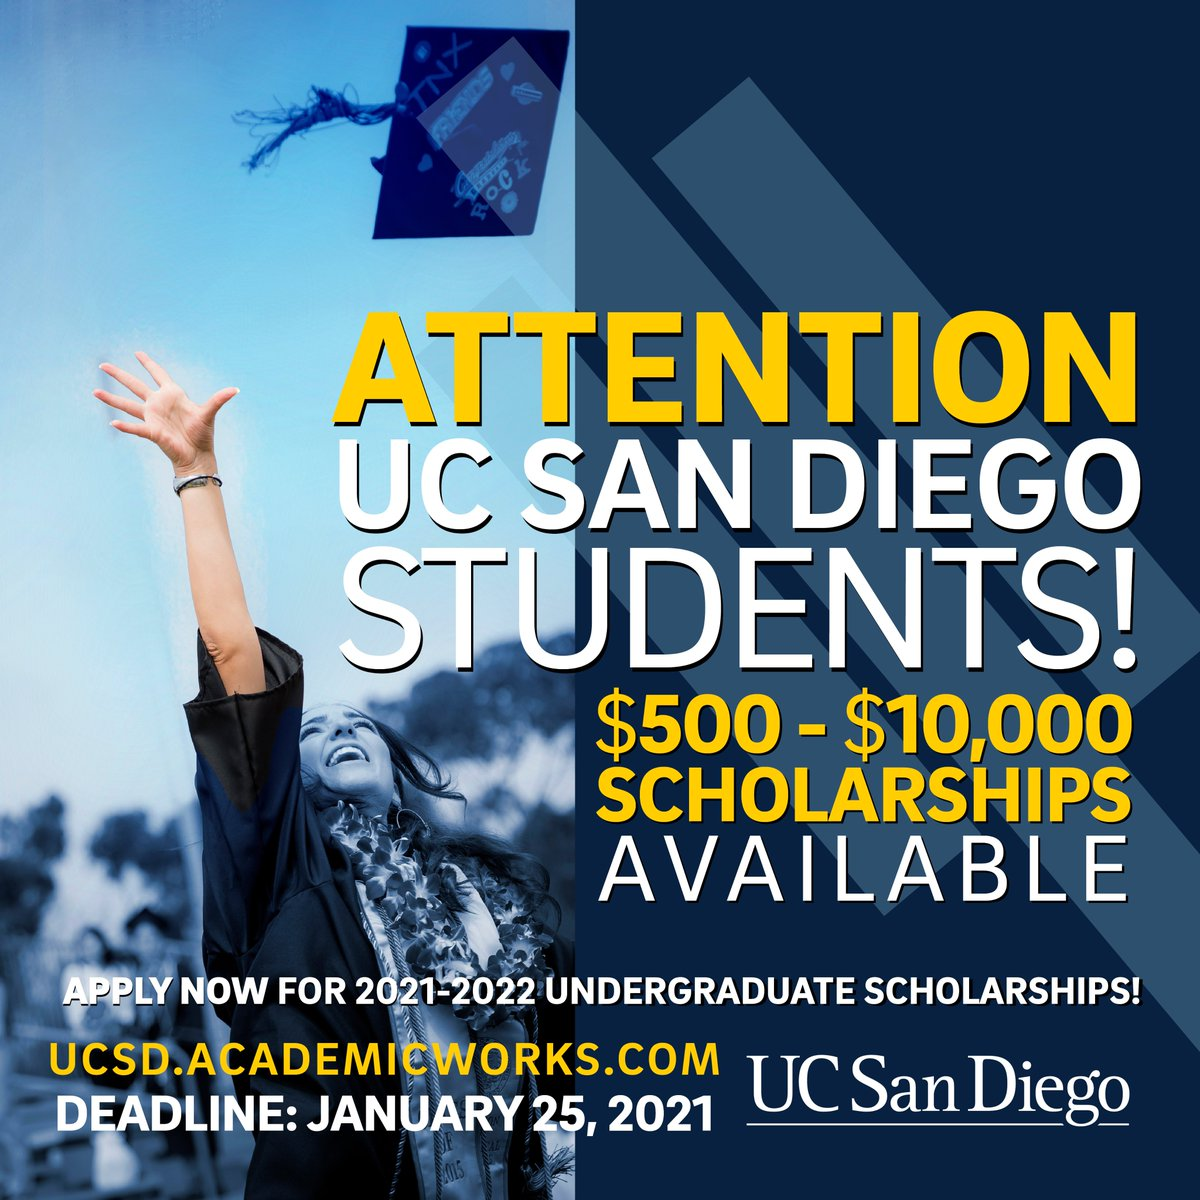 Current @ucsandiego students, you still have time to apply for 2021-2022 undergraduate scholarships.   January 25, 2021 is the deadline to apply. Don't wait until the last minute to submit!  Get started with your applications here: https://t.co/7pzLdxqbU5 https://t.co/4022pBSlQX